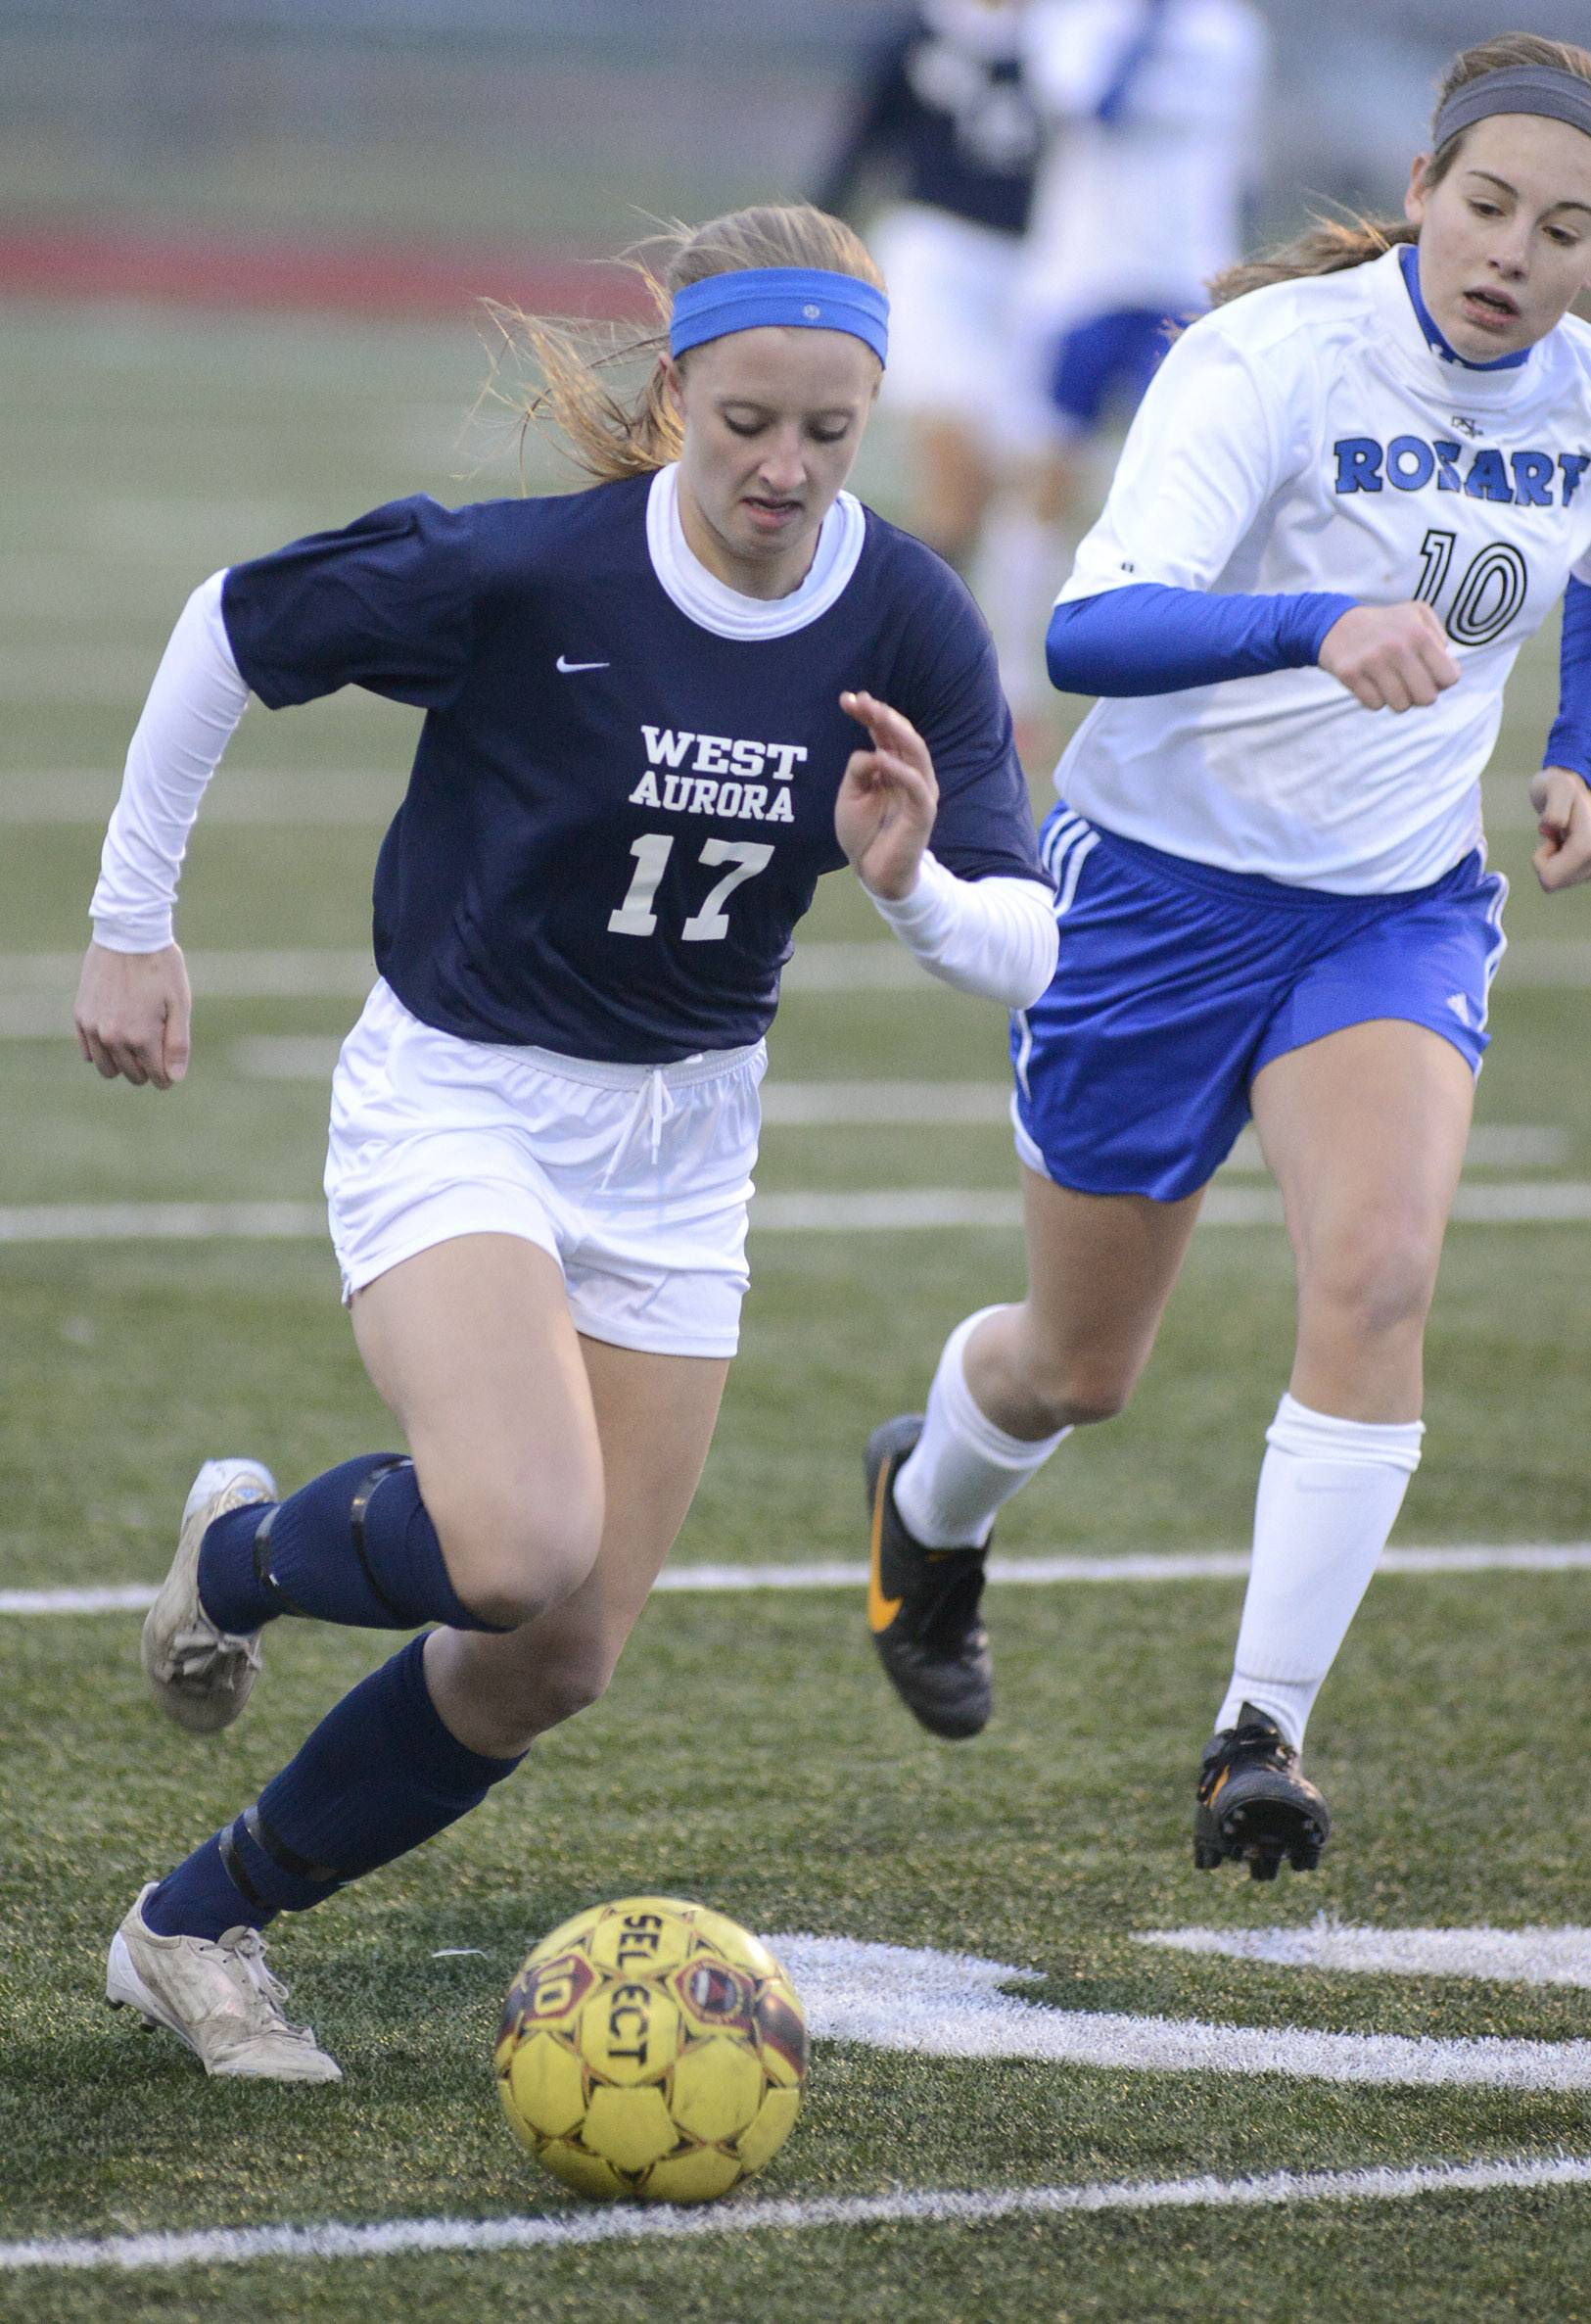 West Aurora's Sam O'Brien is trailed by Rosary's Sonya Popovich in the second half.